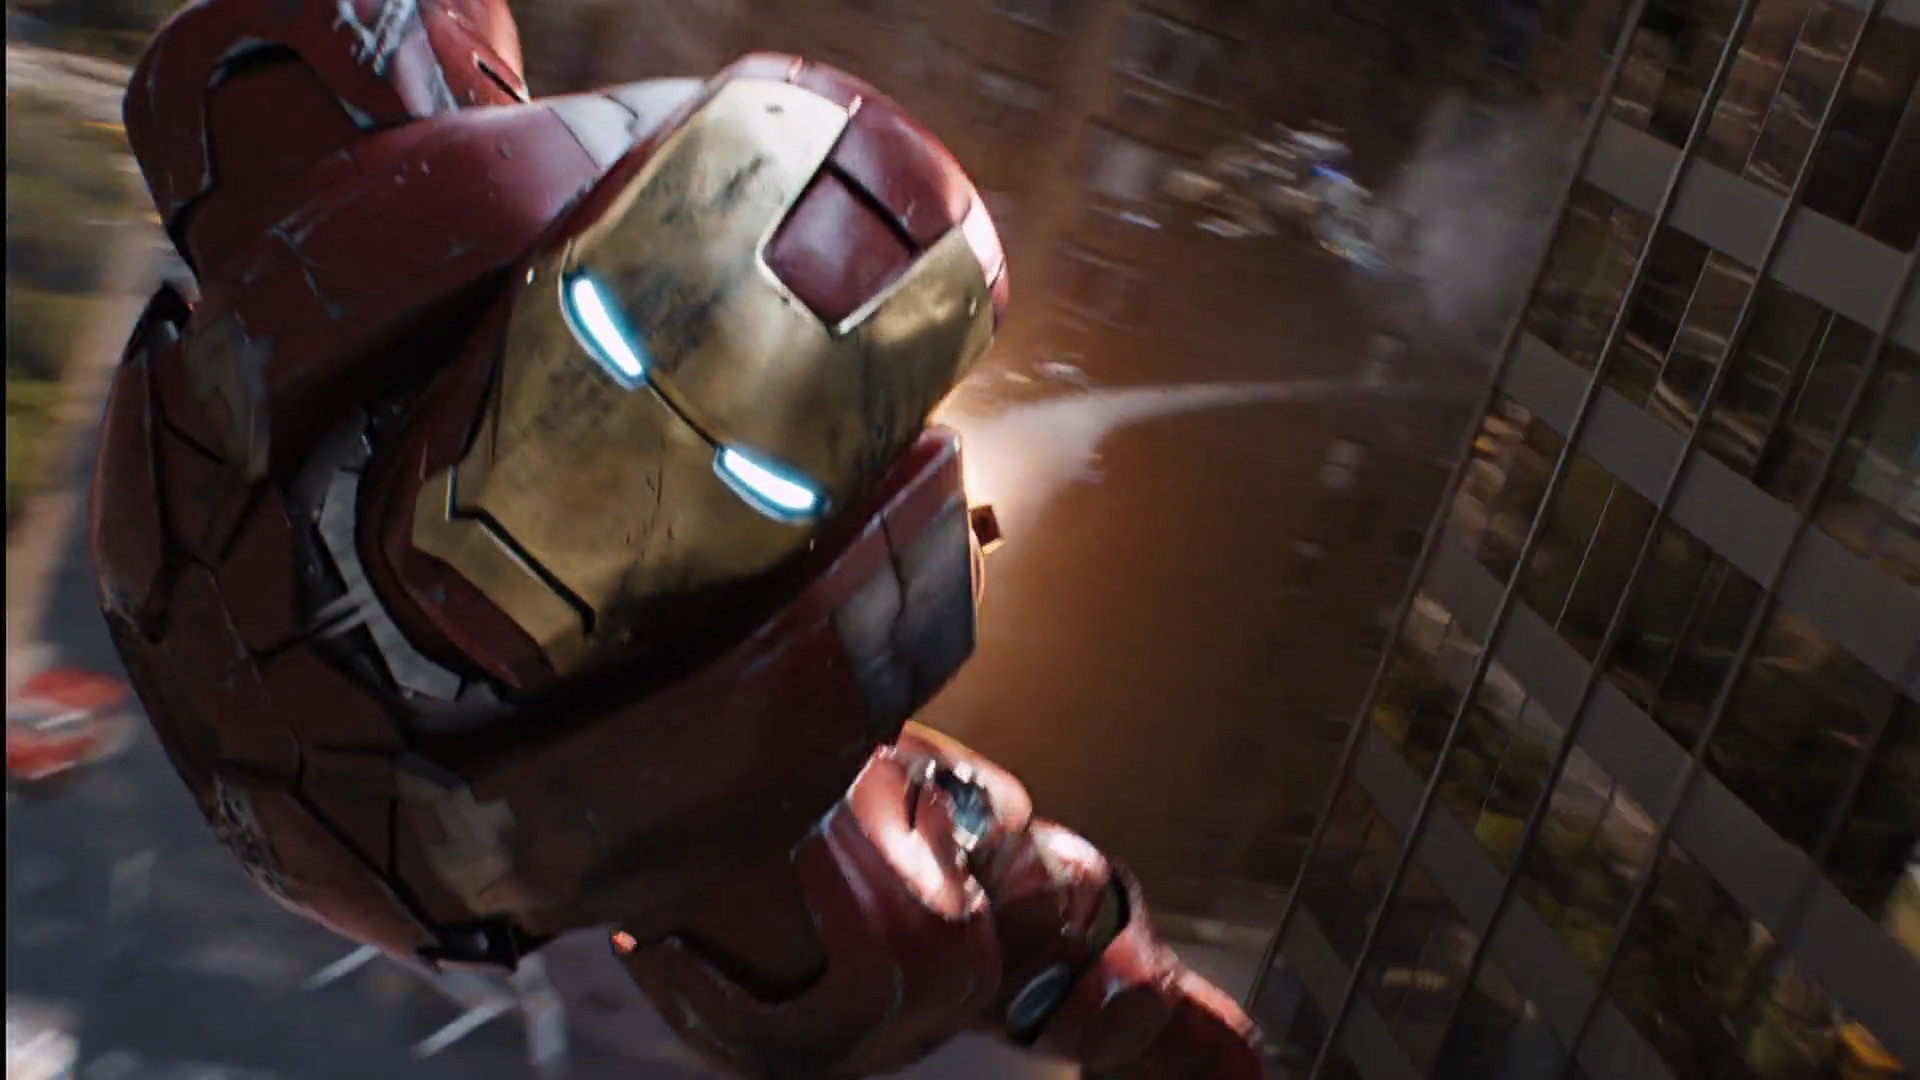 http://www.caps.media/201/2-avengers/full/avengers-movie-screencaps.com-13608.jpg